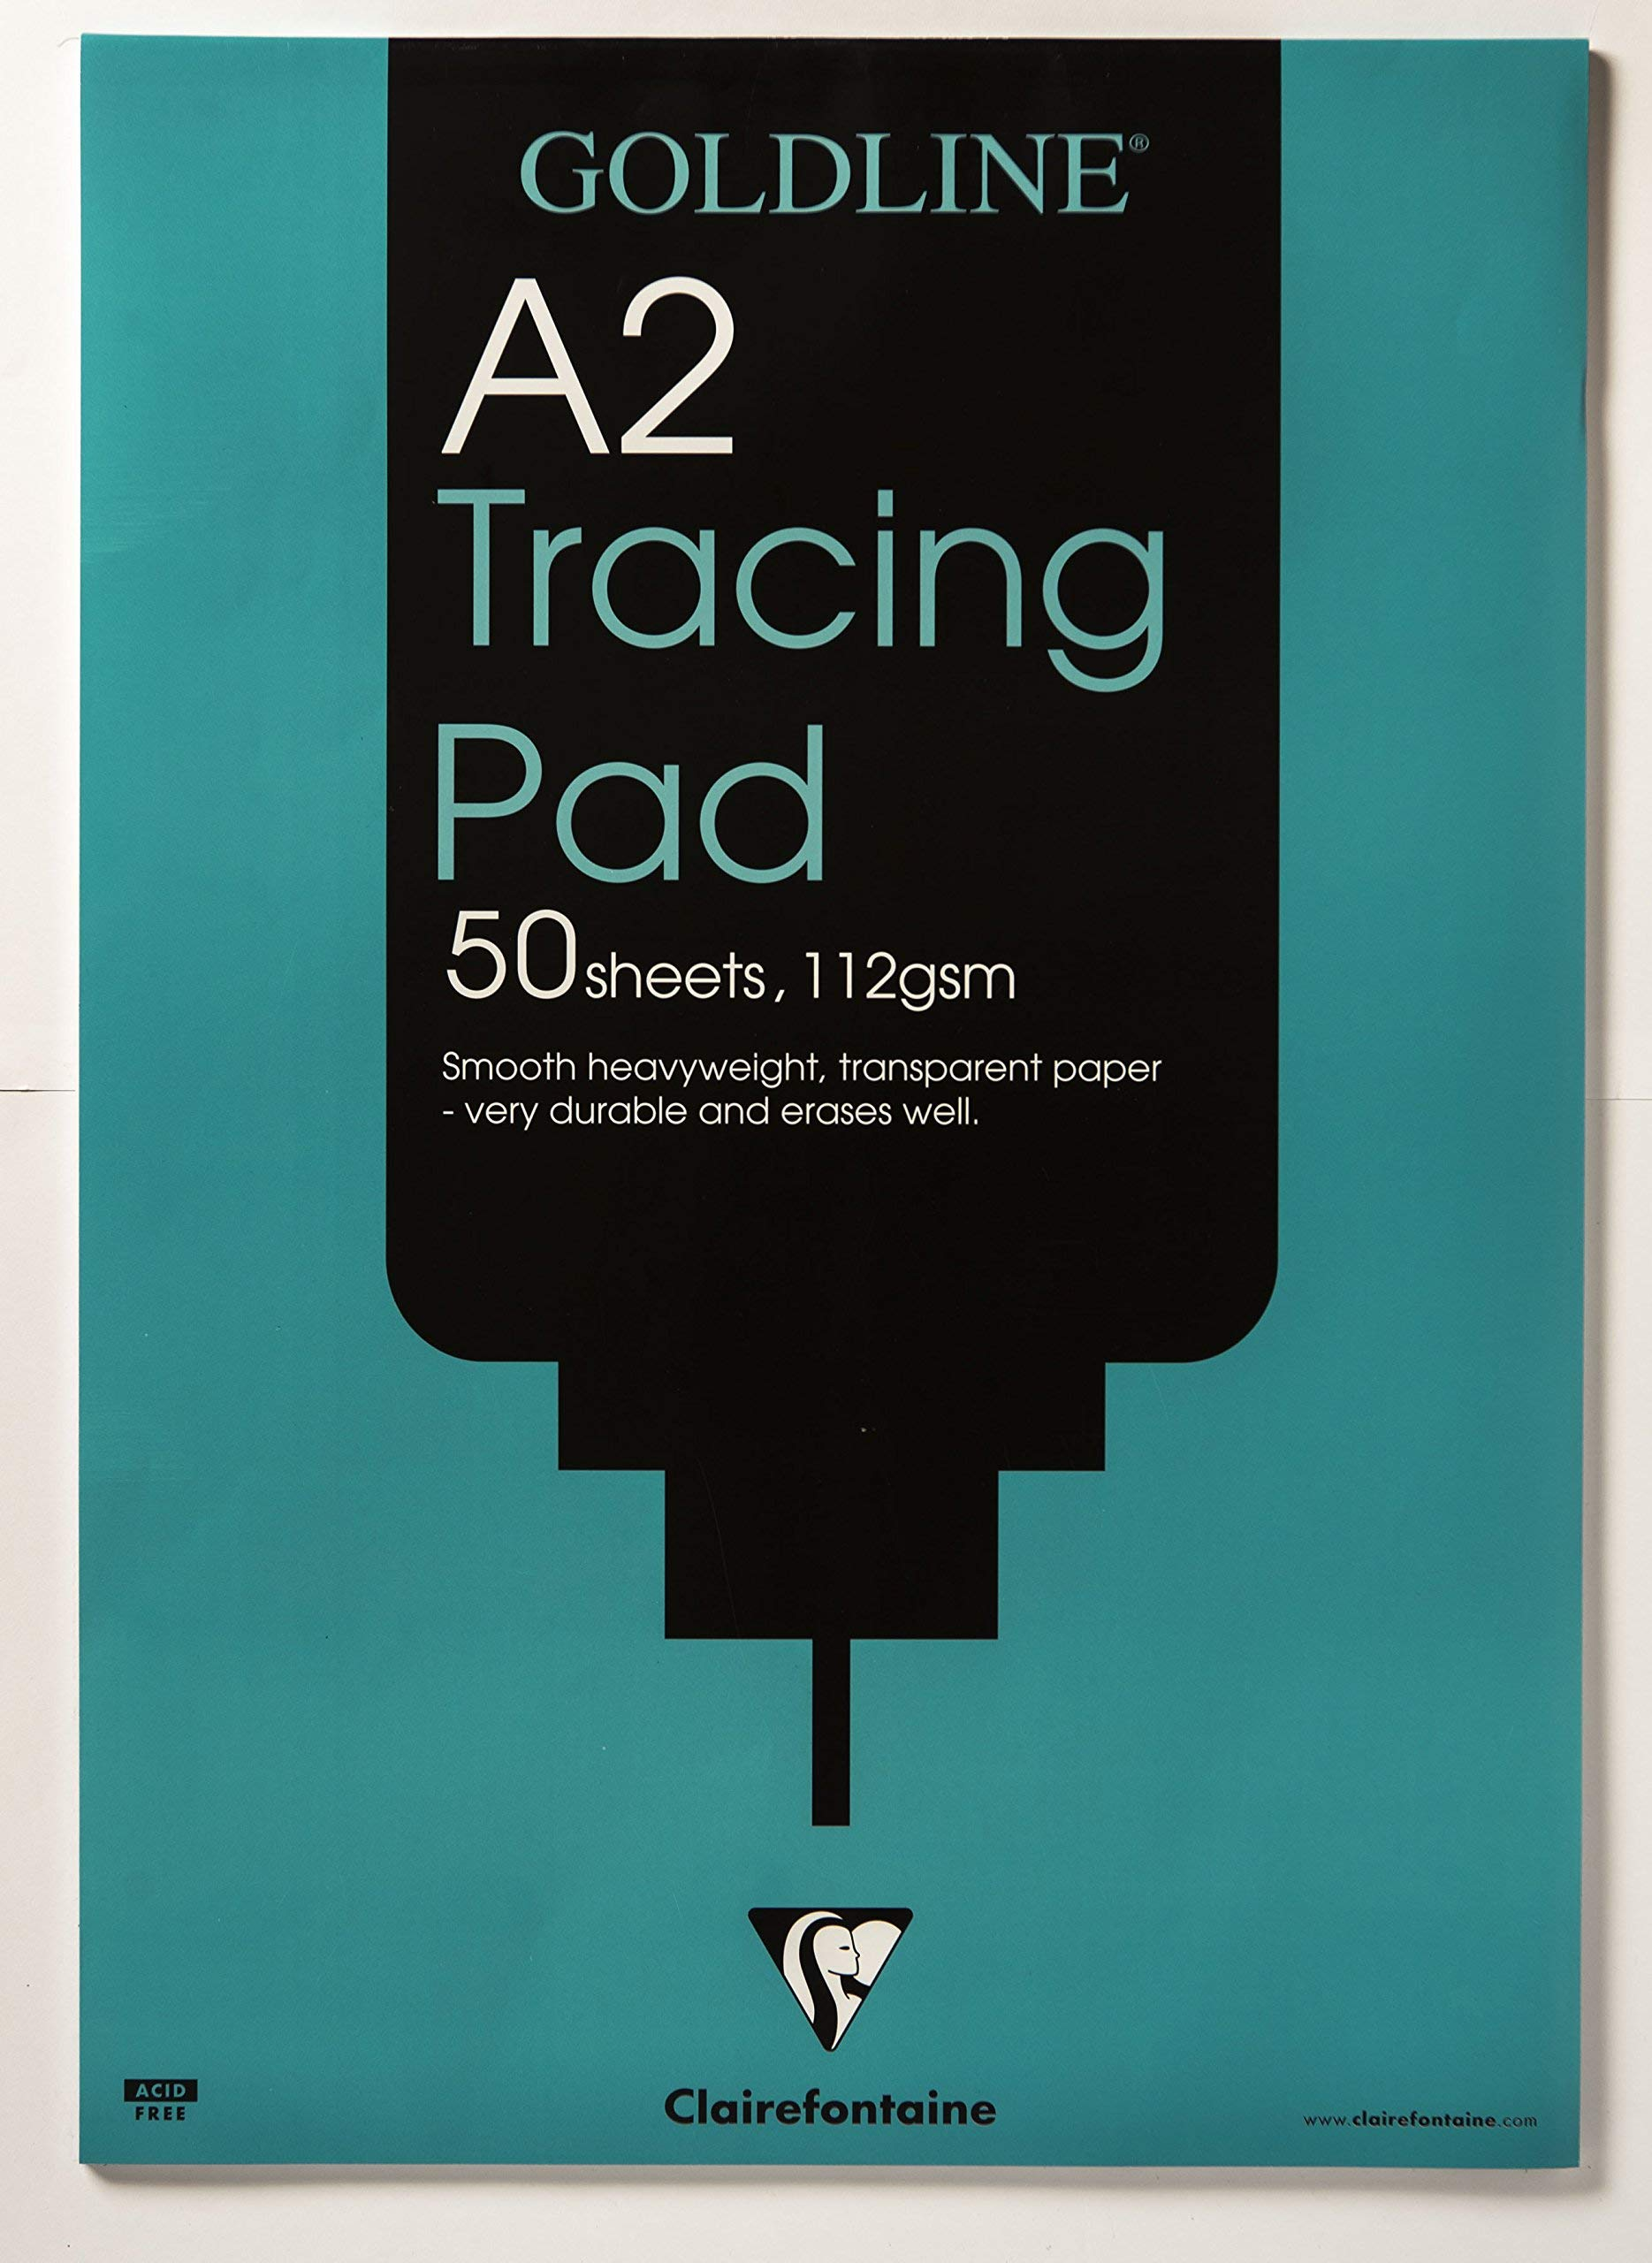 GOLDLINE TRACING PAD A2 112GM Popular by Clairefontaine